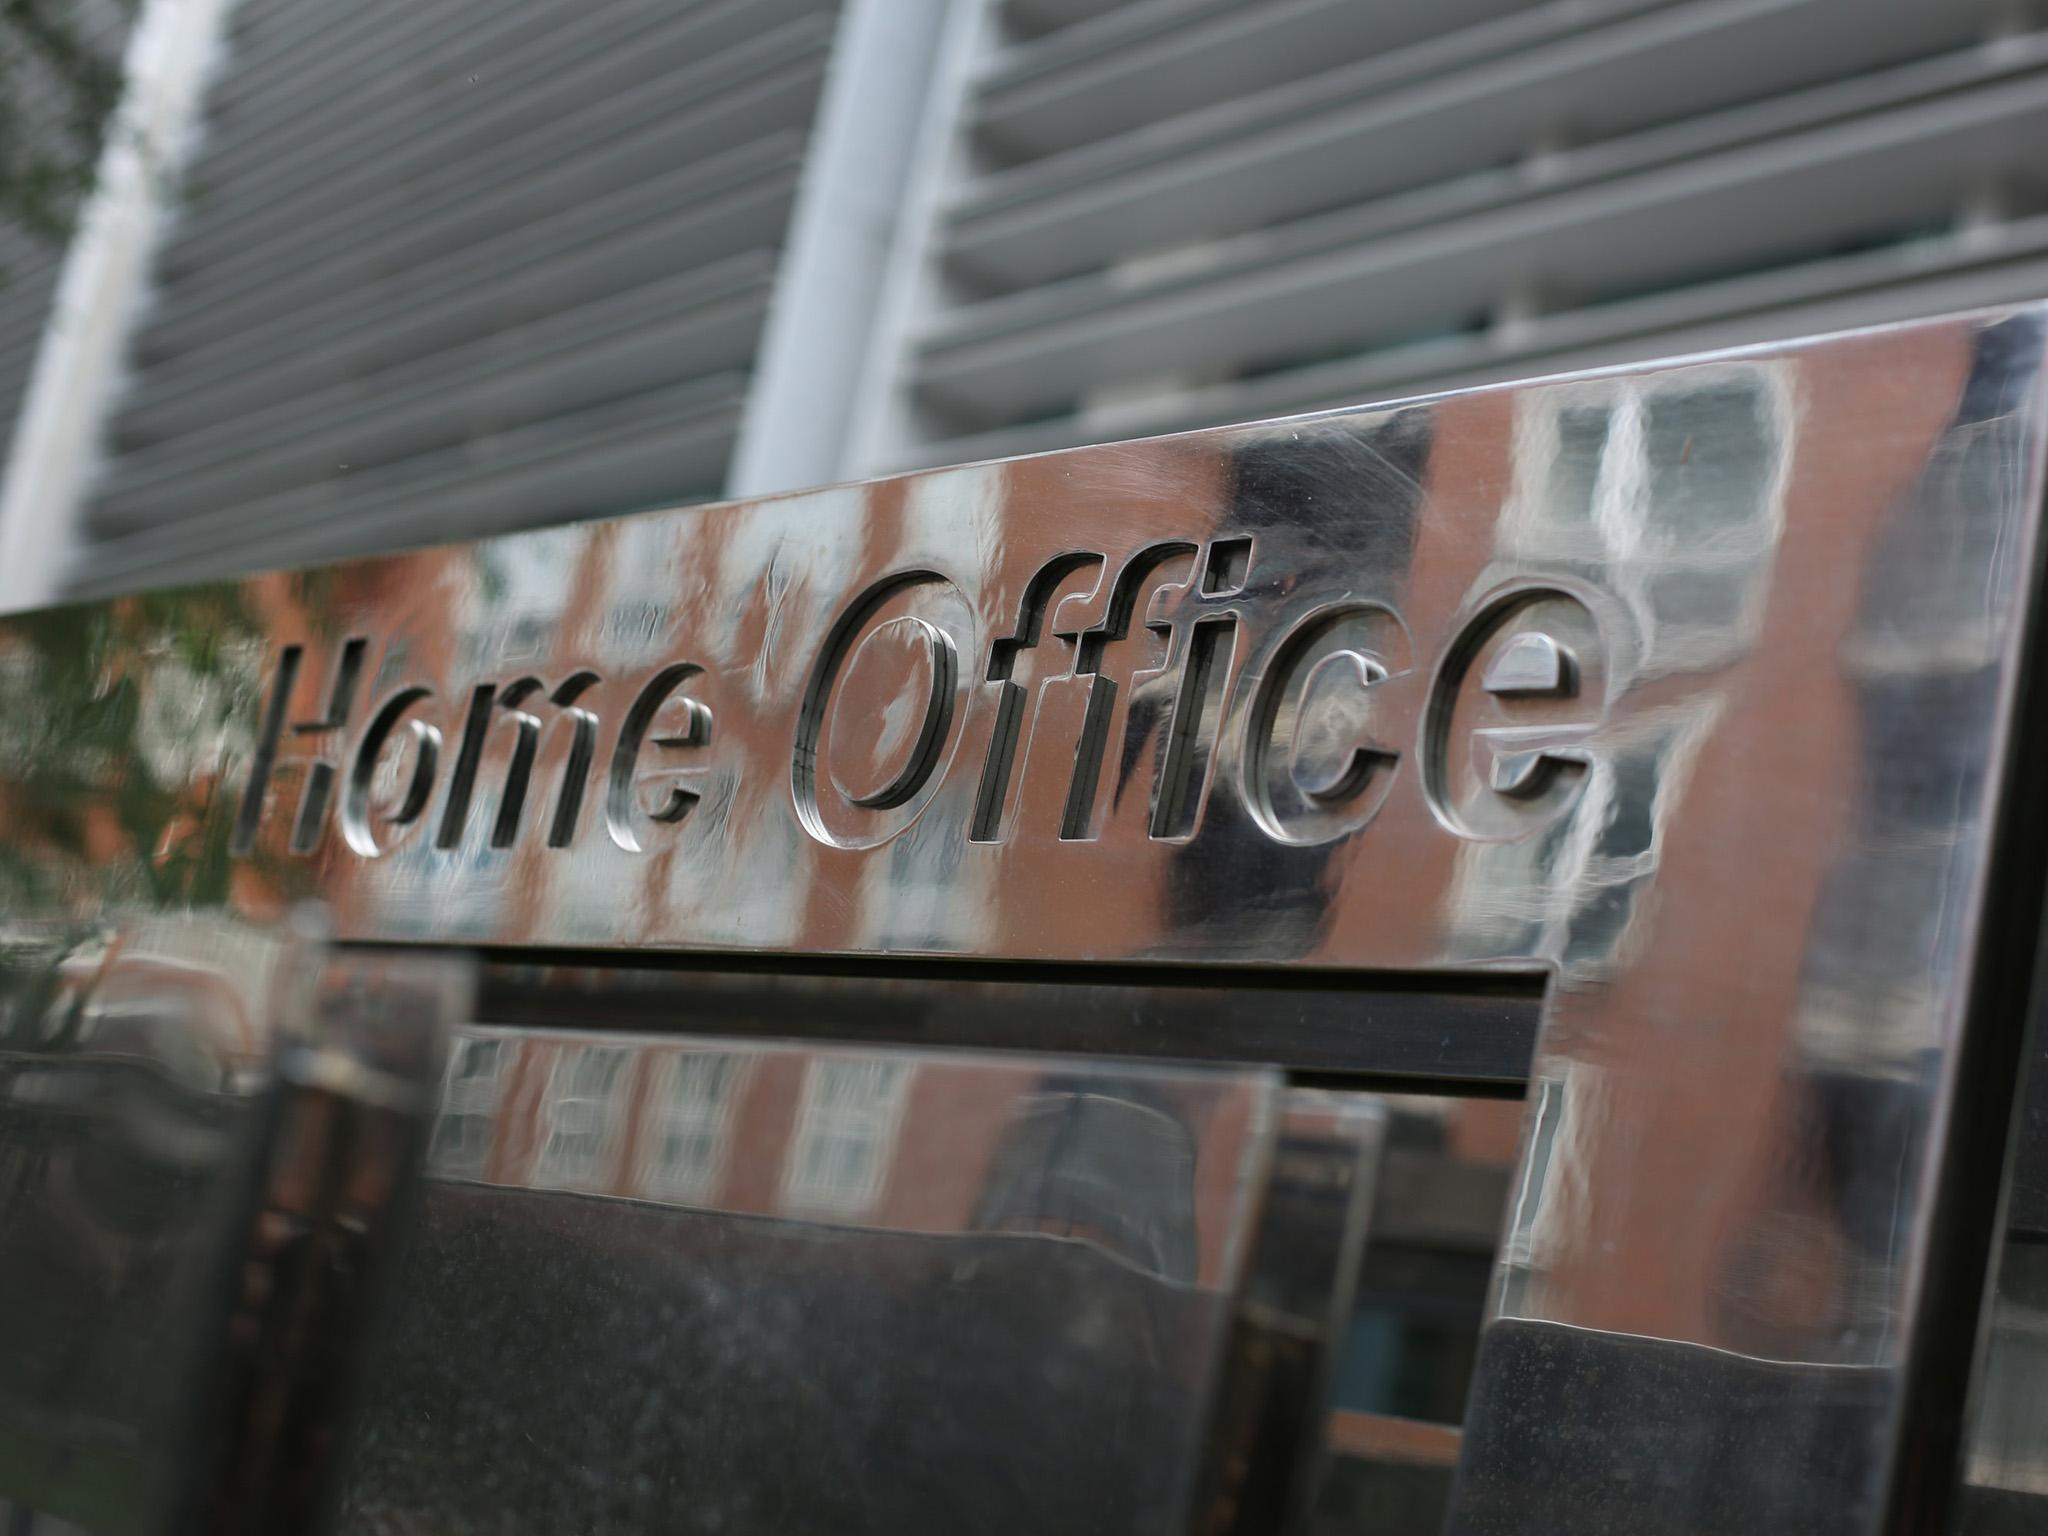 Home Office And Police Failed Consumers Exposing Them To Rampant Online Fraud Finds Report The Independent The Independent